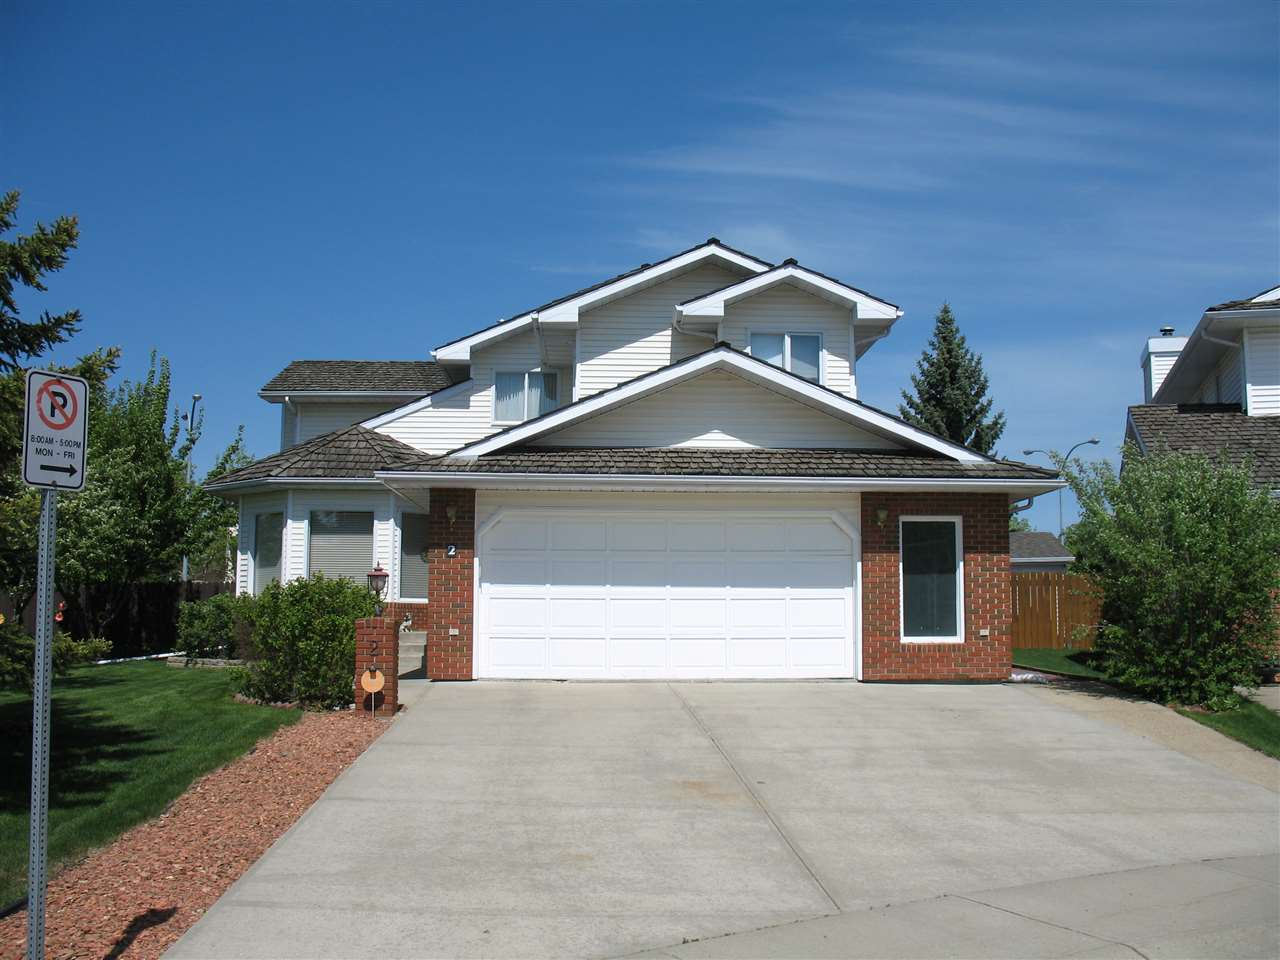 Main Photo: 2 NEWPORT Drive: Sherwood Park House for sale : MLS® # E4066792